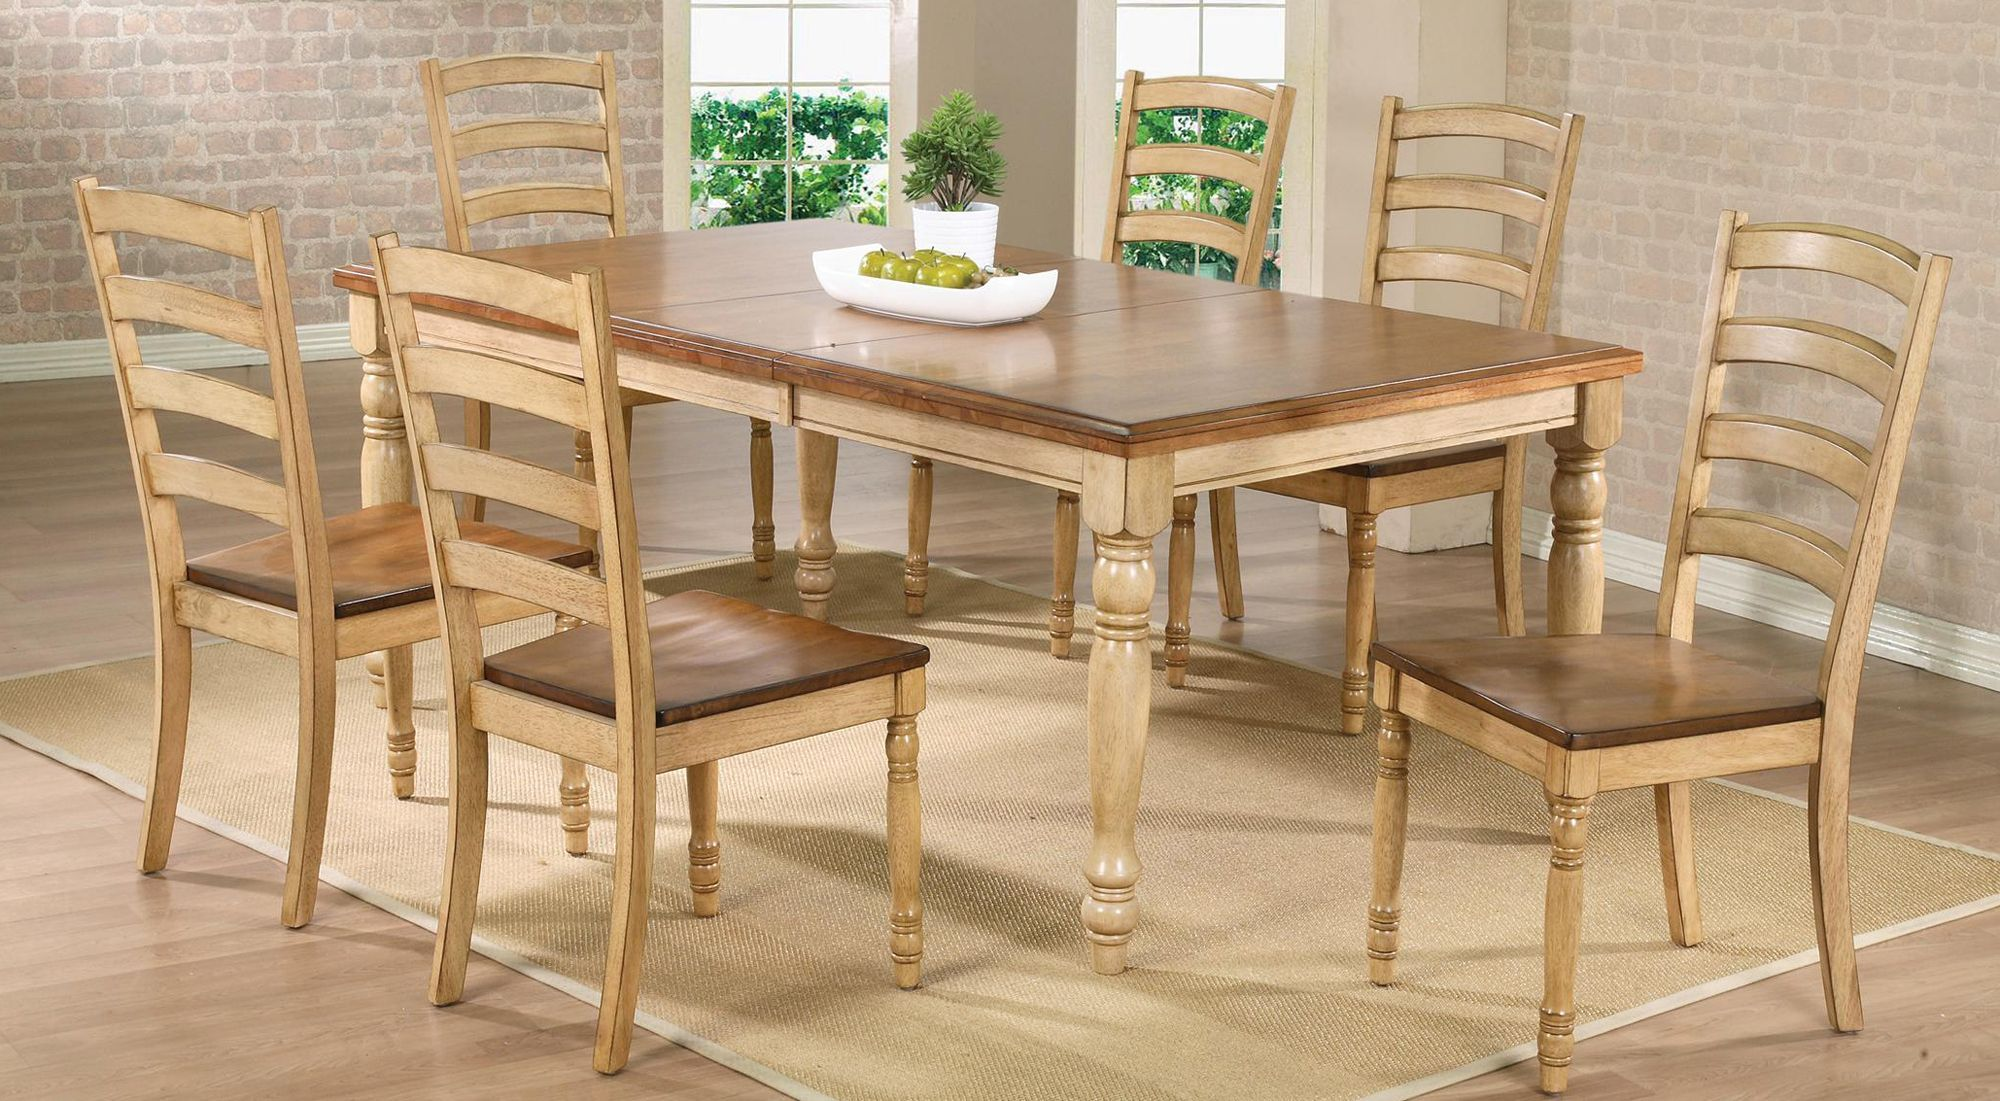 Rc willey dining set 9 pc, $9   Affordable dining room sets ...